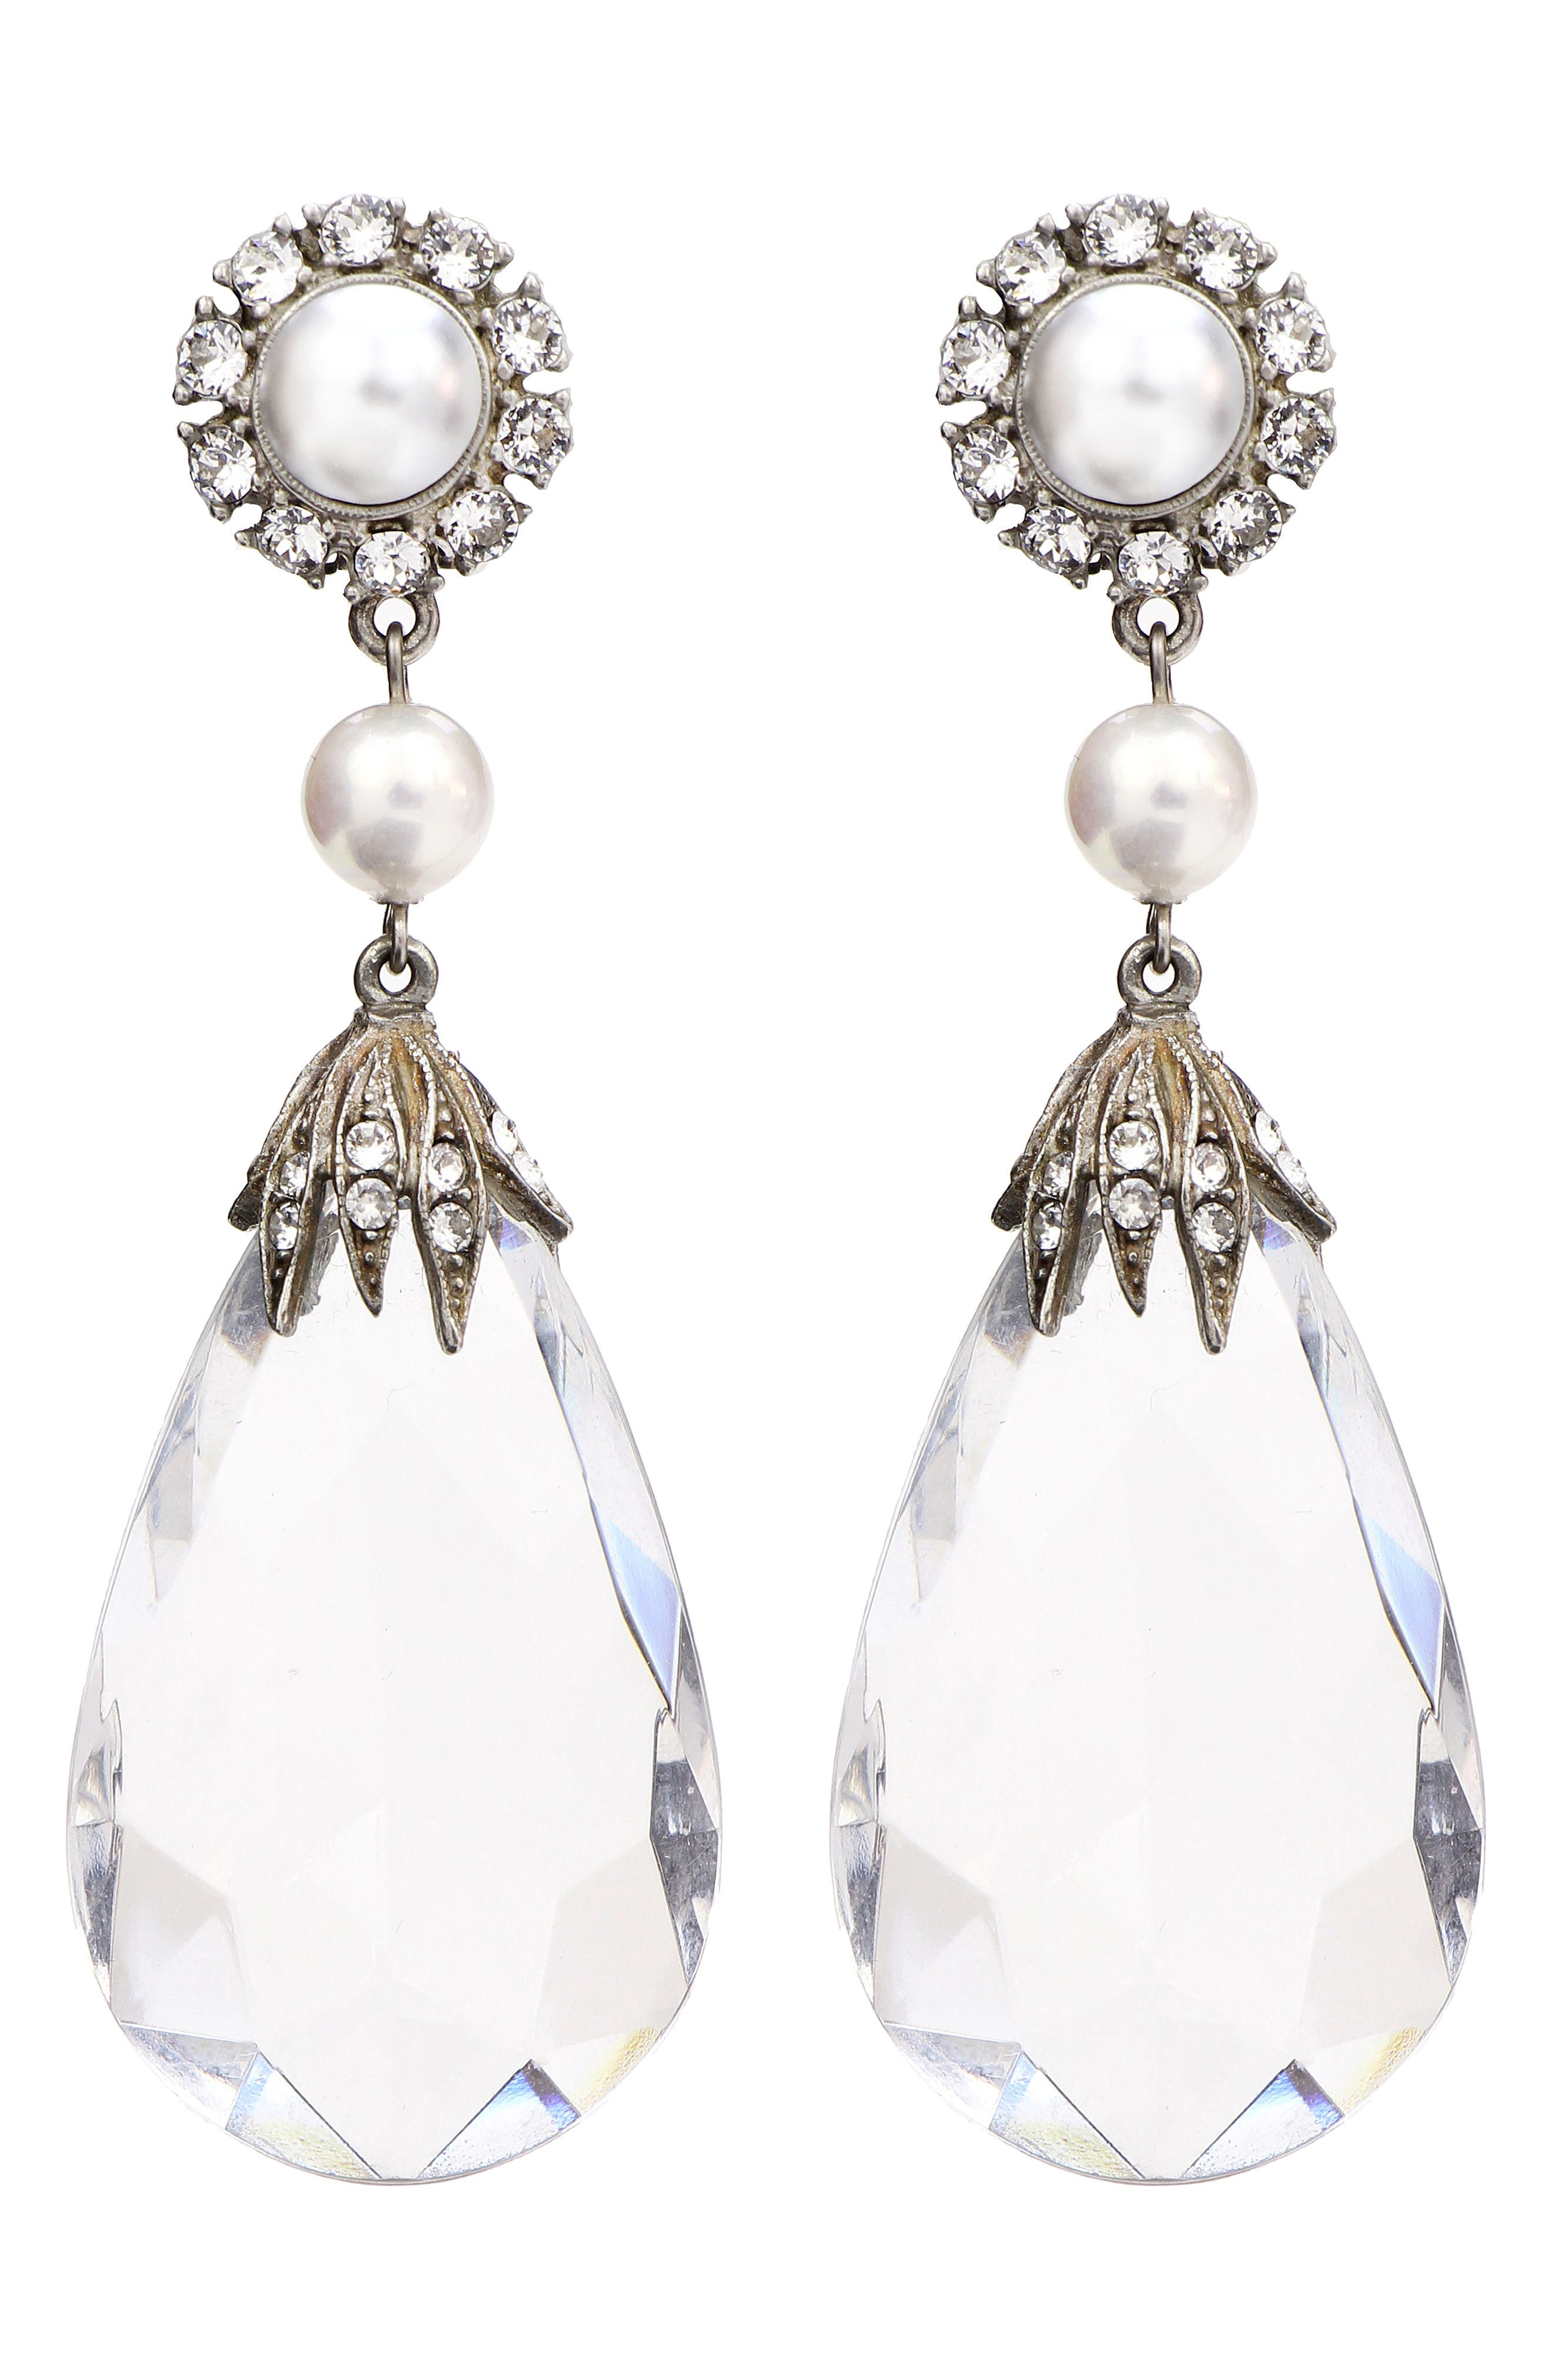 Imitation Pearl & Crystal Clip Earrings,                         Main,                         color, Clear/ Silver